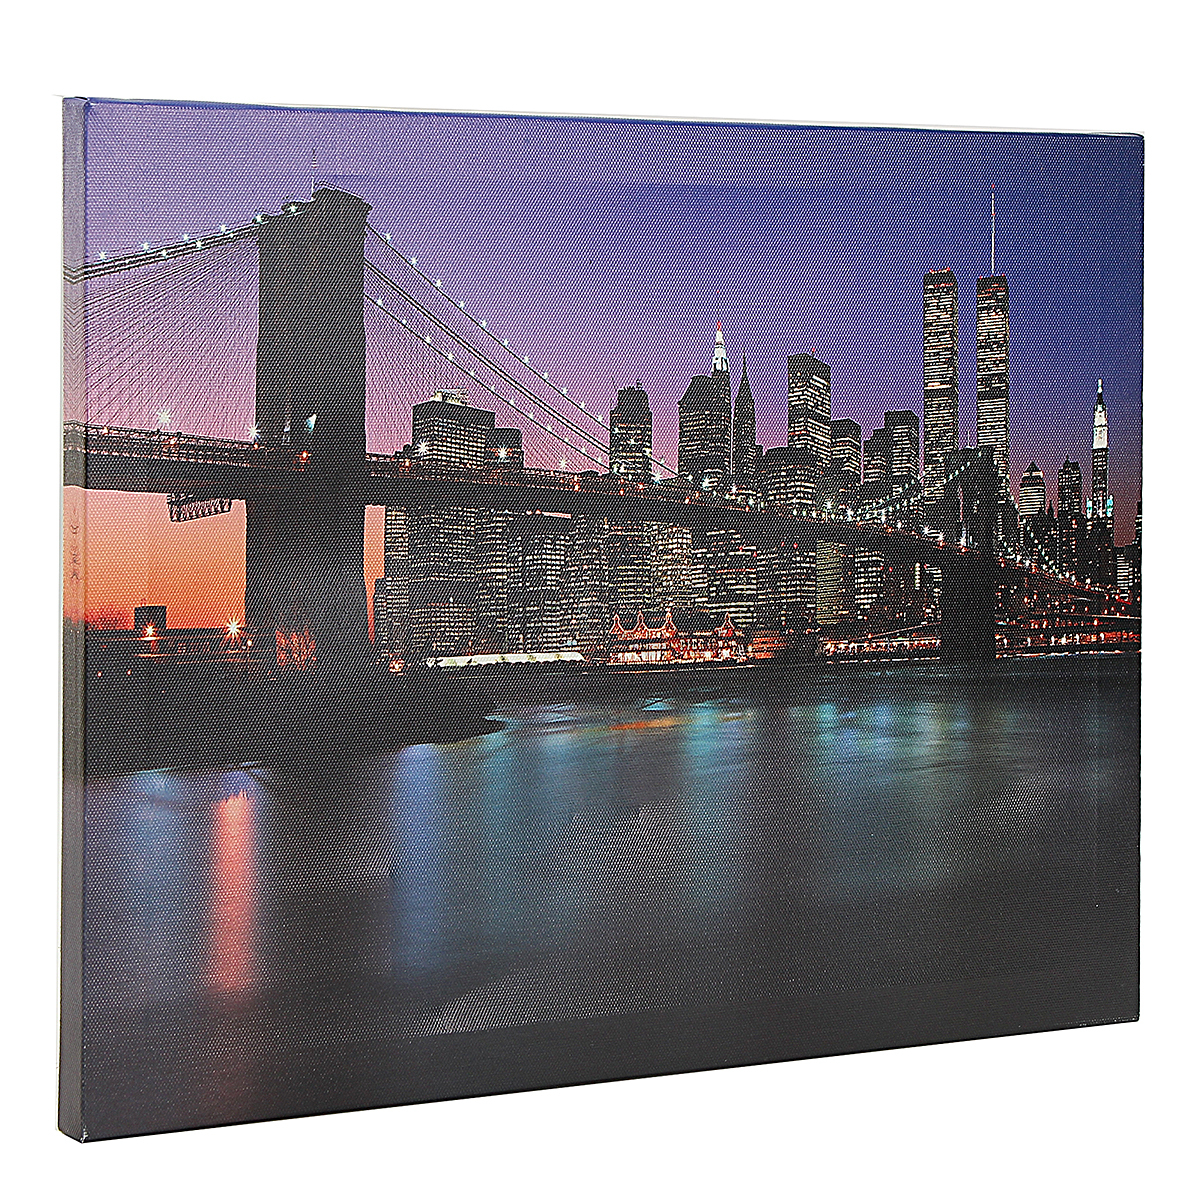 bridge led light up canvas painting picture wall hanging. Black Bedroom Furniture Sets. Home Design Ideas